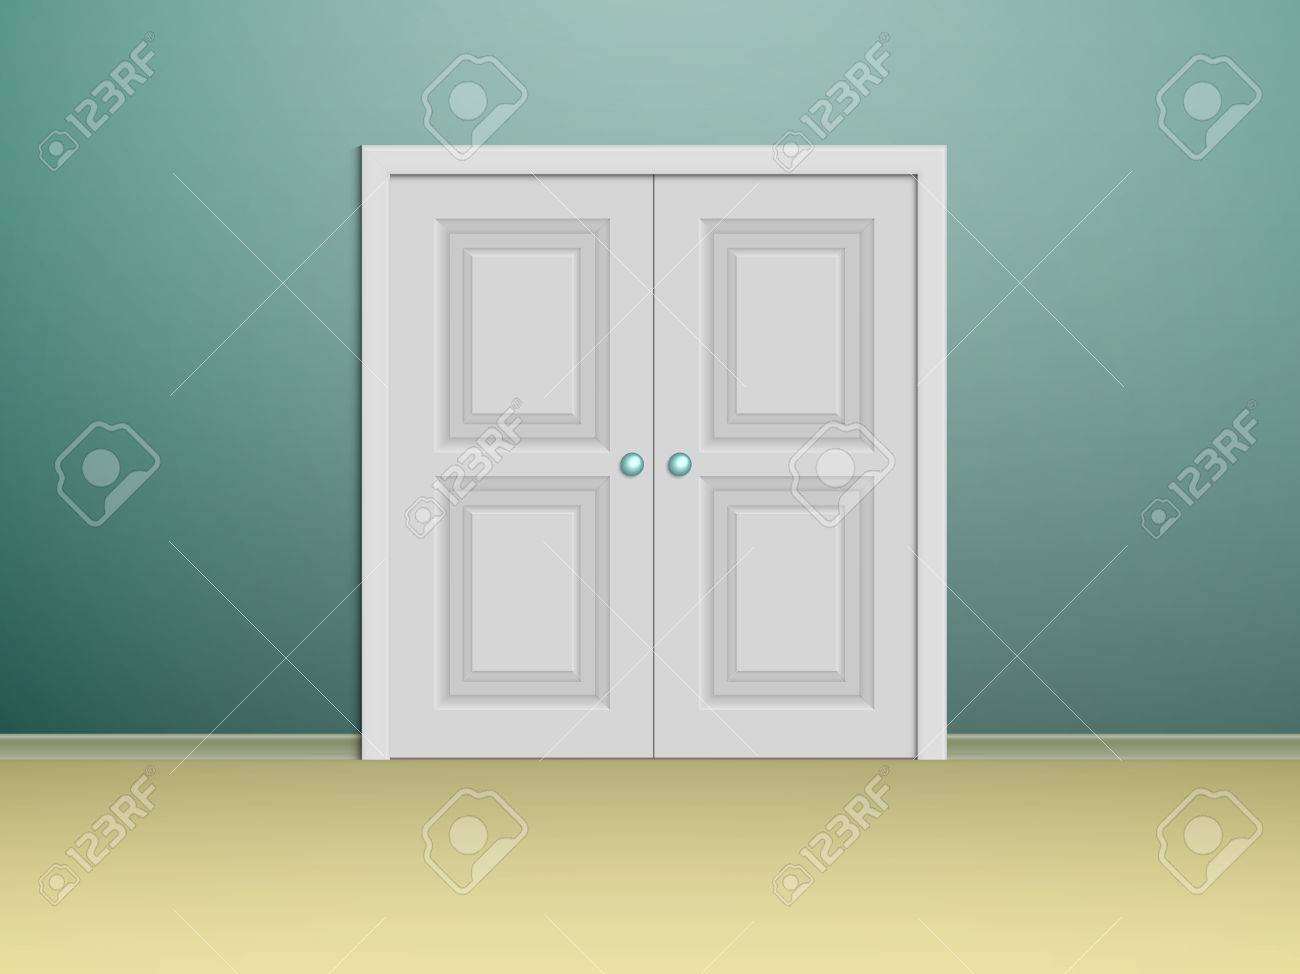 double white panelled doors in a room with turquoise walls Stock Vector - 49596056 & Double White Panelled Doors In A Room With Turquoise Walls Royalty ...